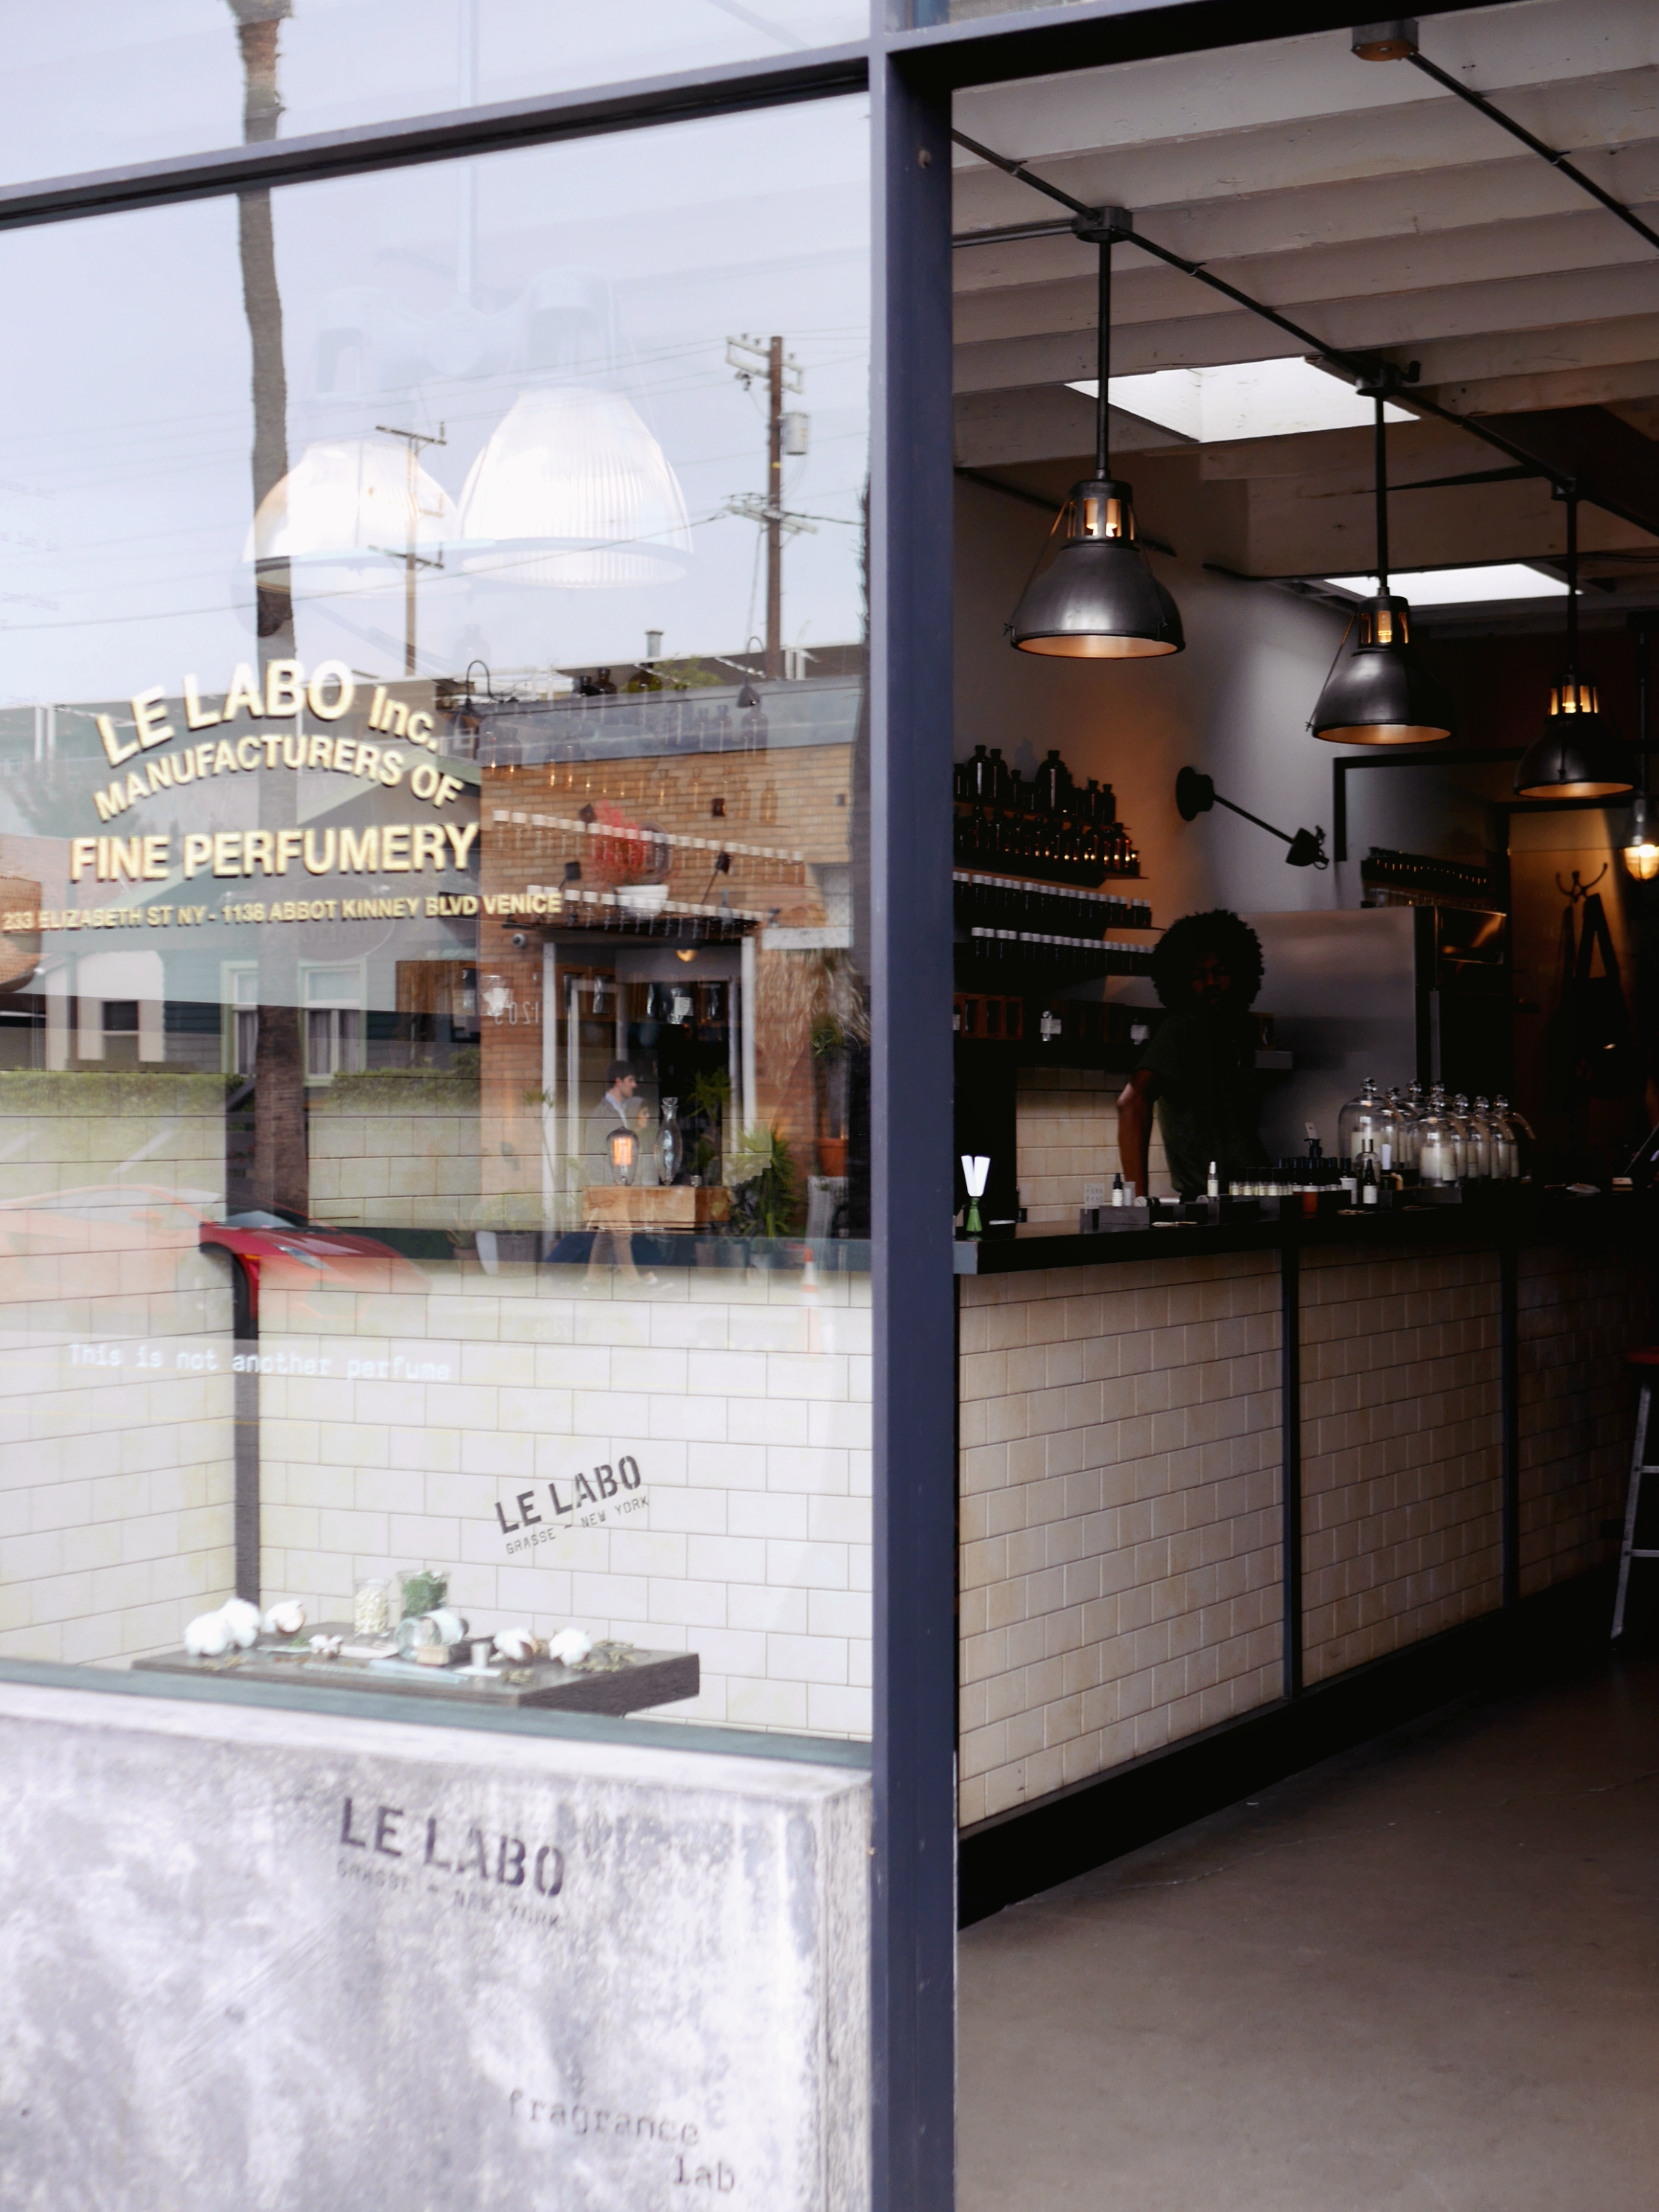 If you stroll down Abbot Kinney make sure to stop by Le Labo, if you're into perfumes like me :)